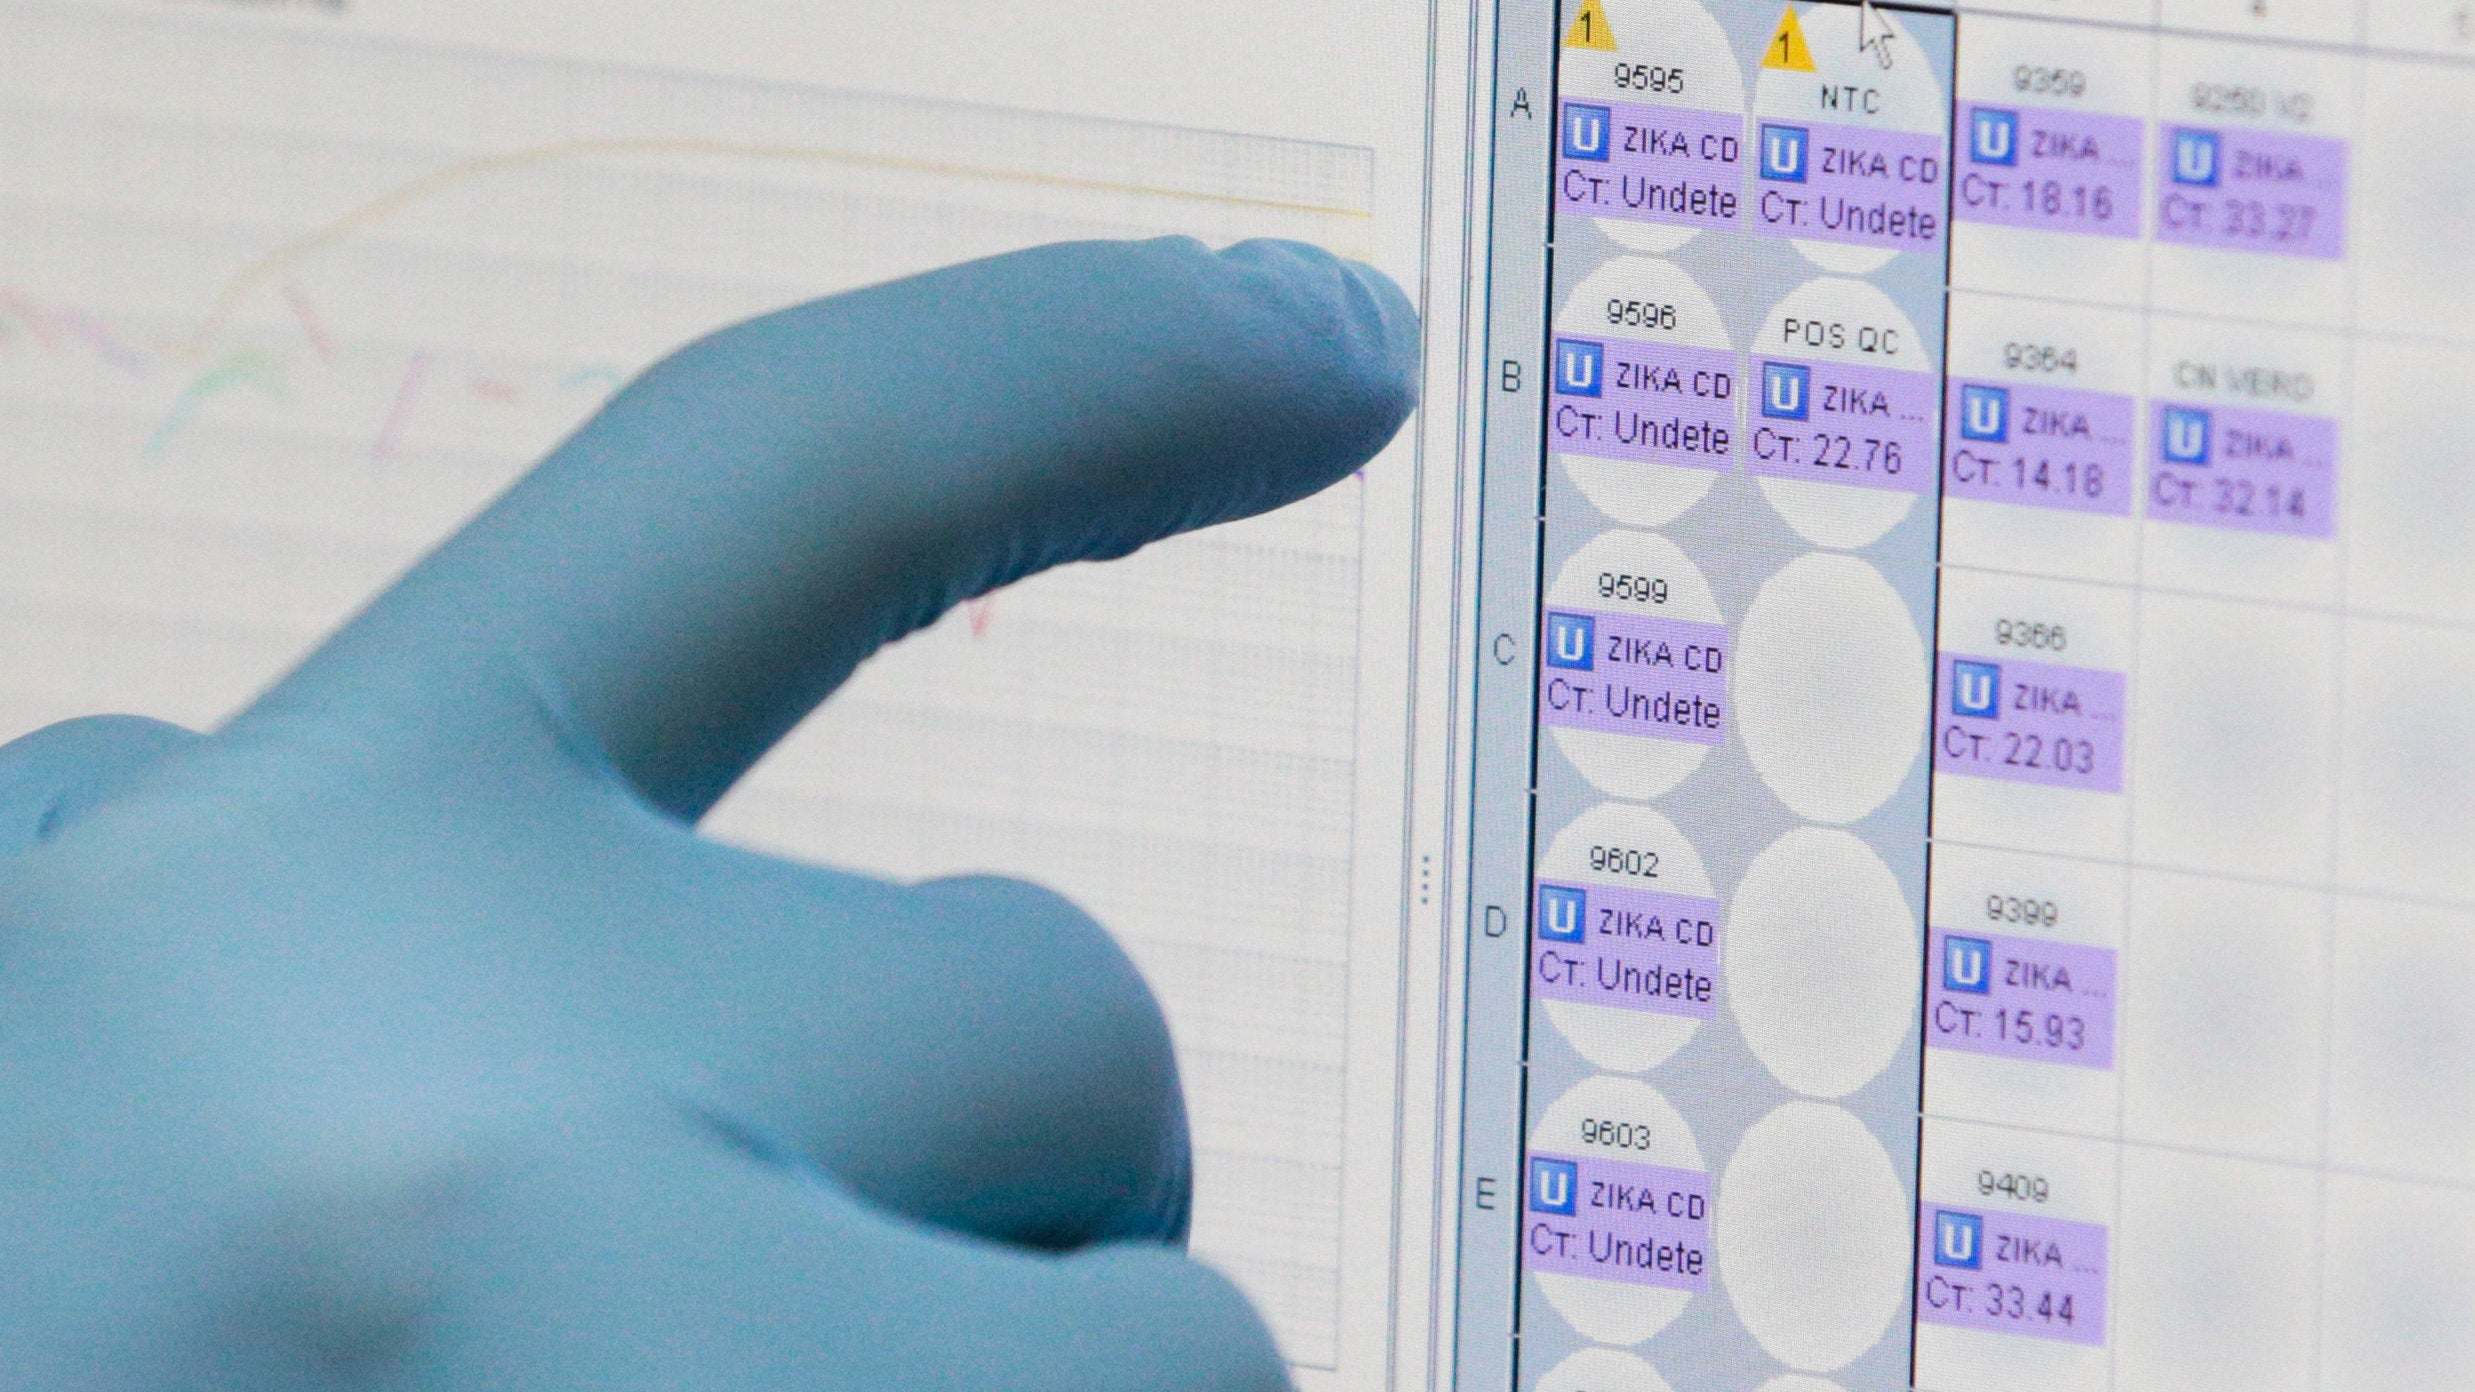 Lab Testing Giant Quest Diagnostics Says Data Breach May Have Hit Nearly 12 Million Patients